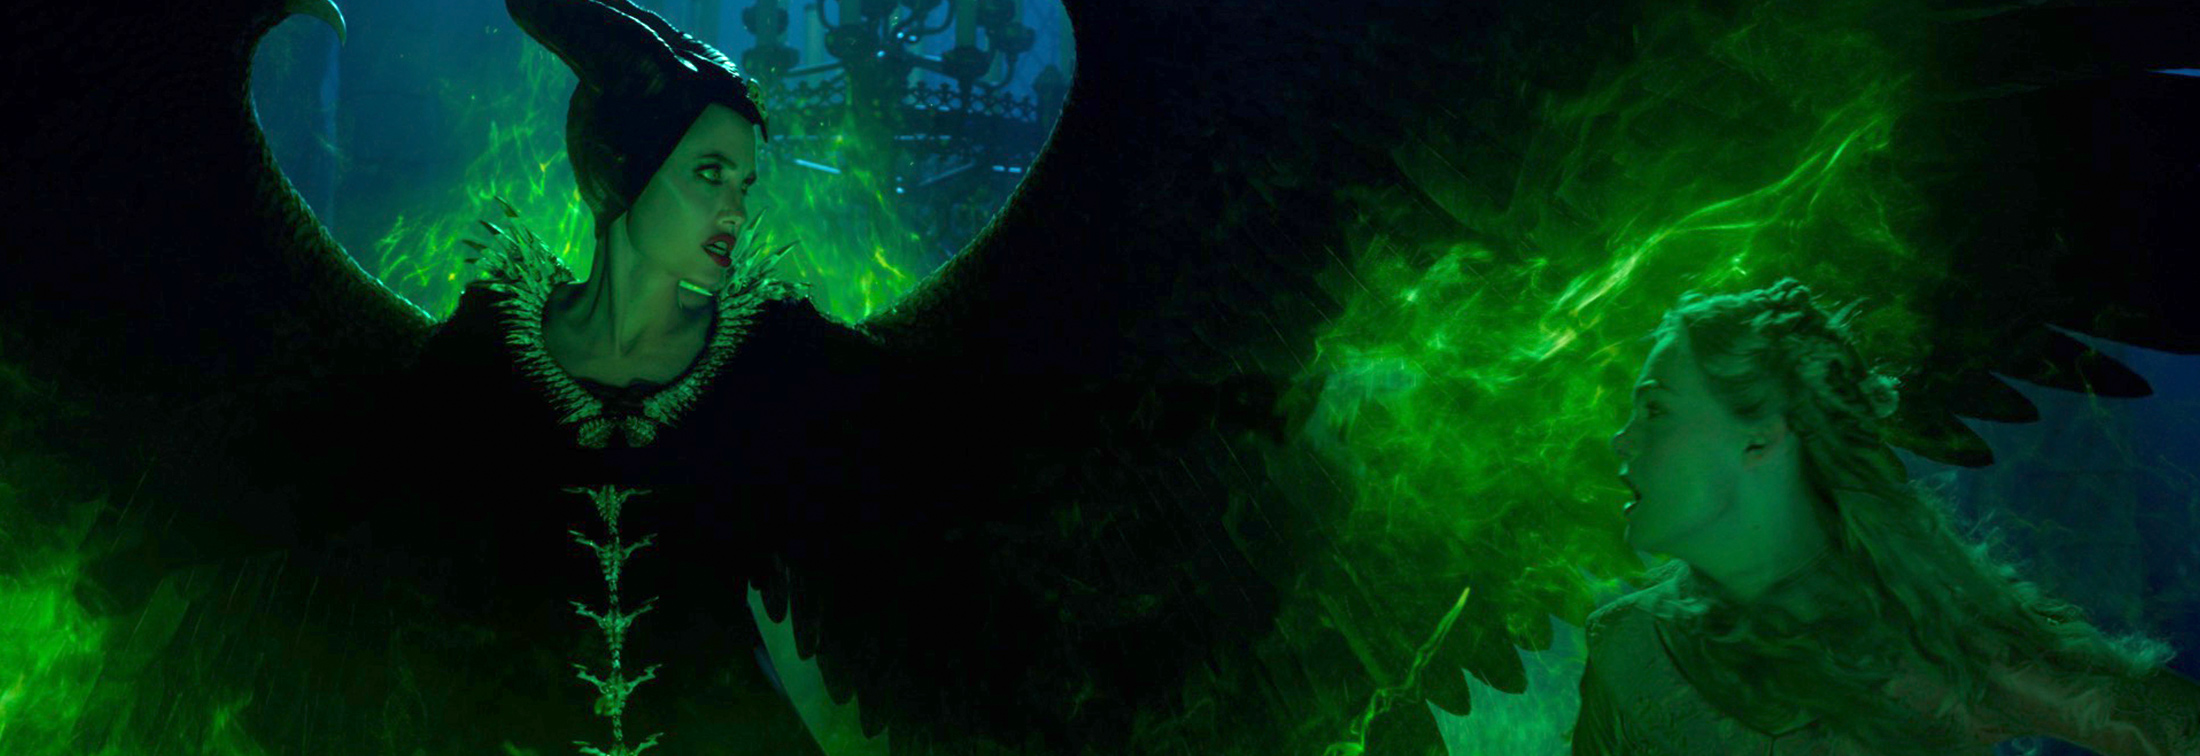 Maleficent: Mistress of Evil - Disney still have some magic left in them